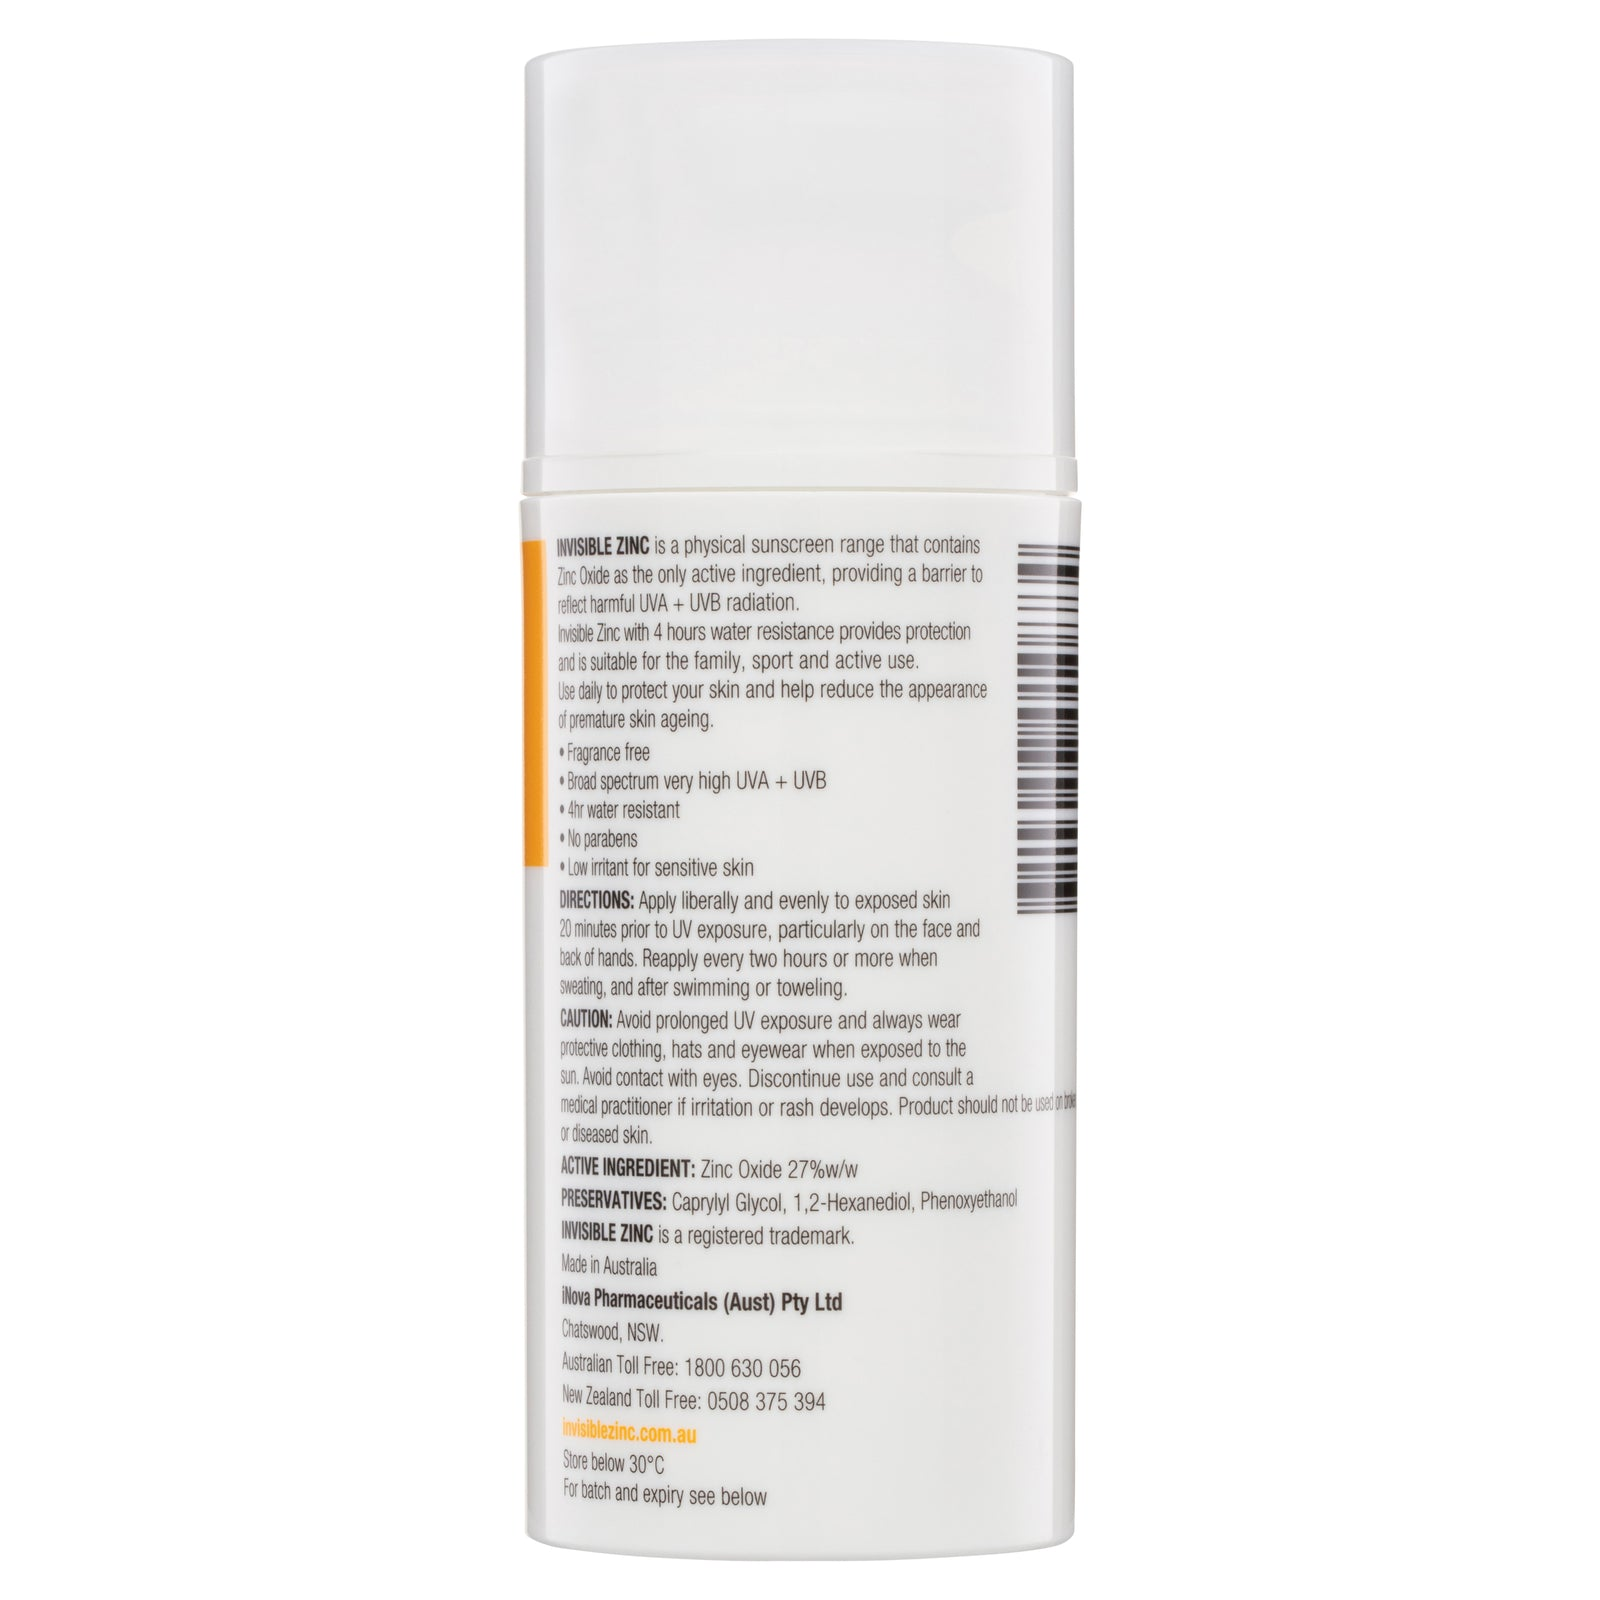 Buy Sport 4hr resistant SPF 50+ 100 mL by Invisible Zinc